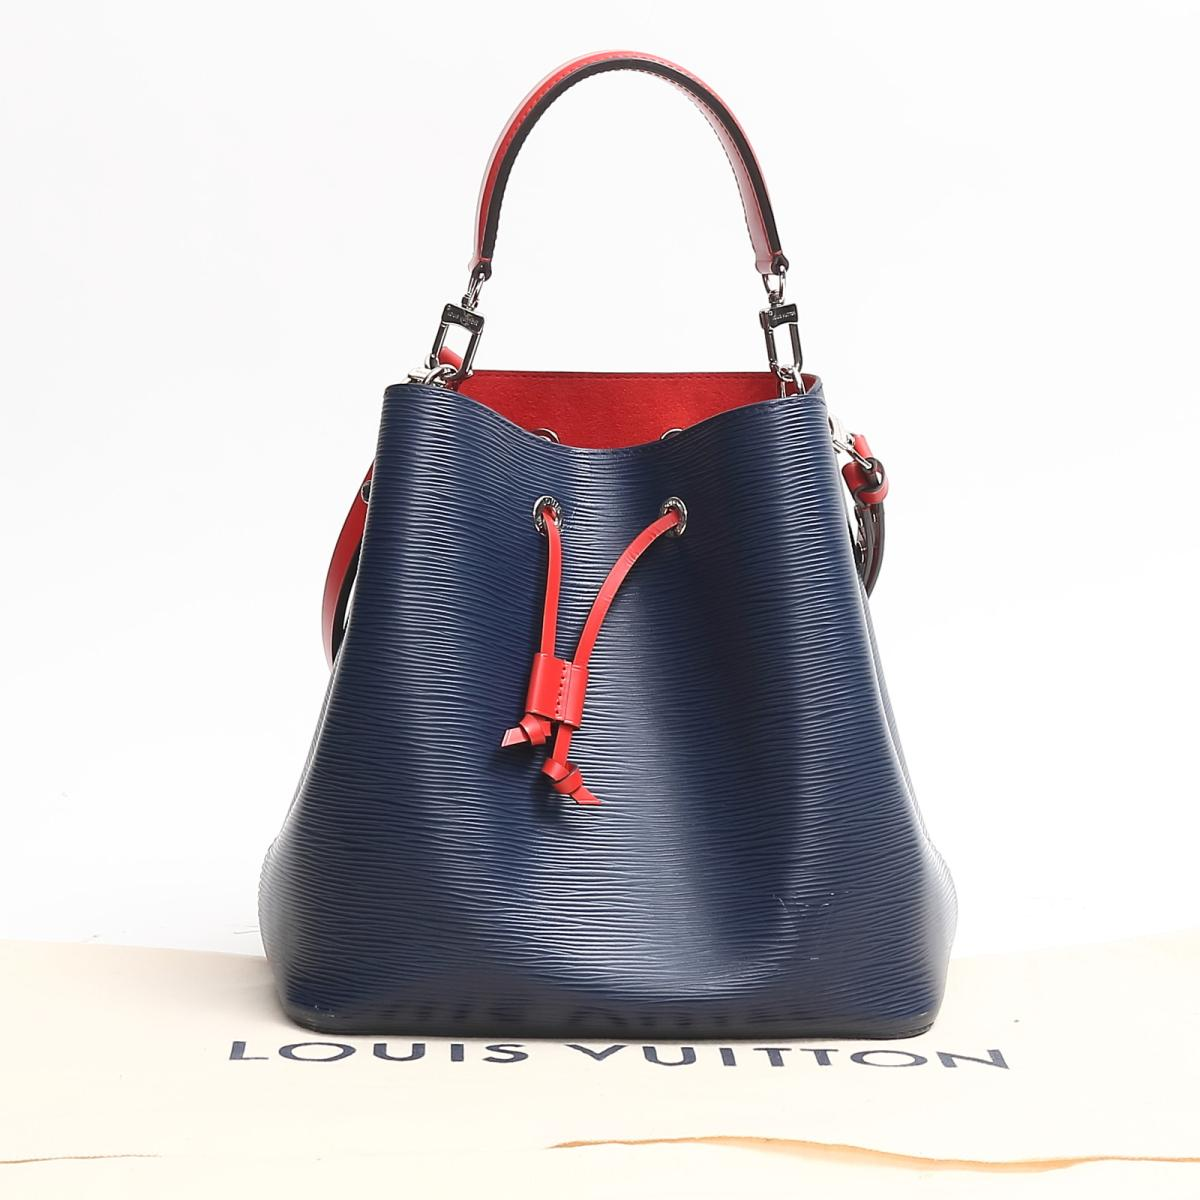 2c2eec61976f (Free shipping) Auth LOUIS VUITTON Neo Noe hand shoulder bag M54367 Epi  Indigo Blue x Red Used